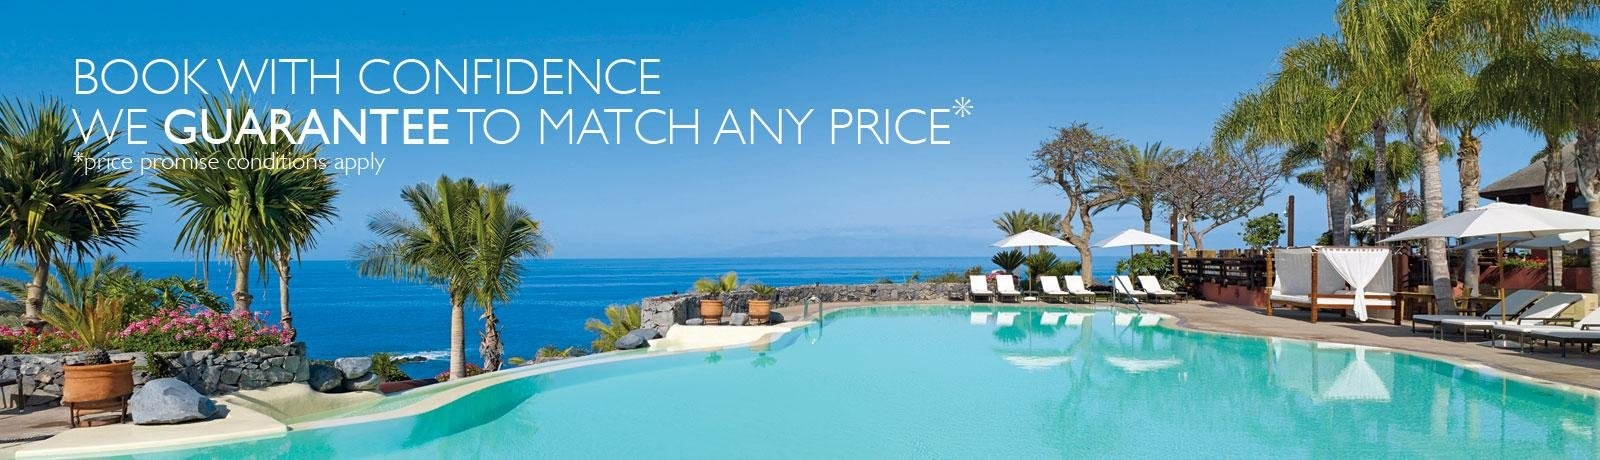 Tailor made luxury holidays